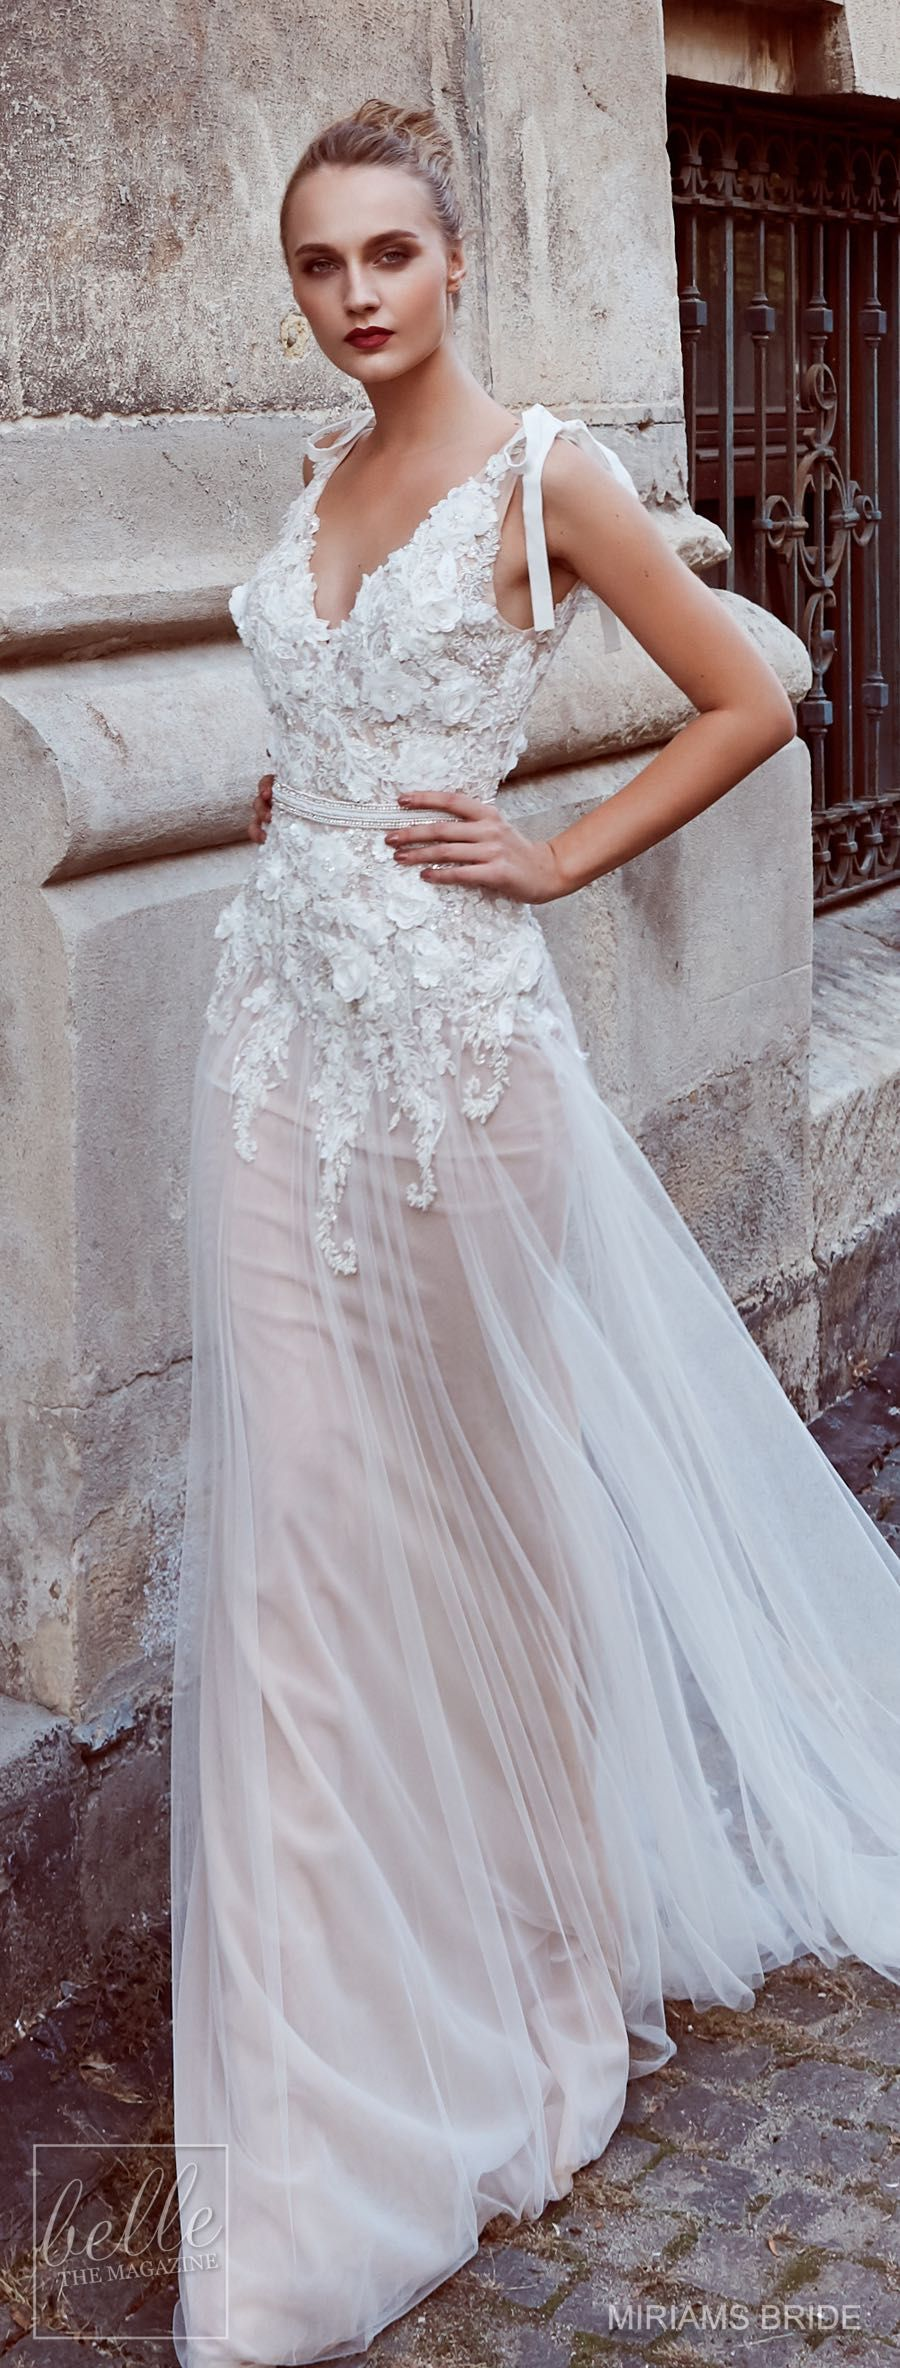 Wedding dresses by miriams bride collection stunning bridal